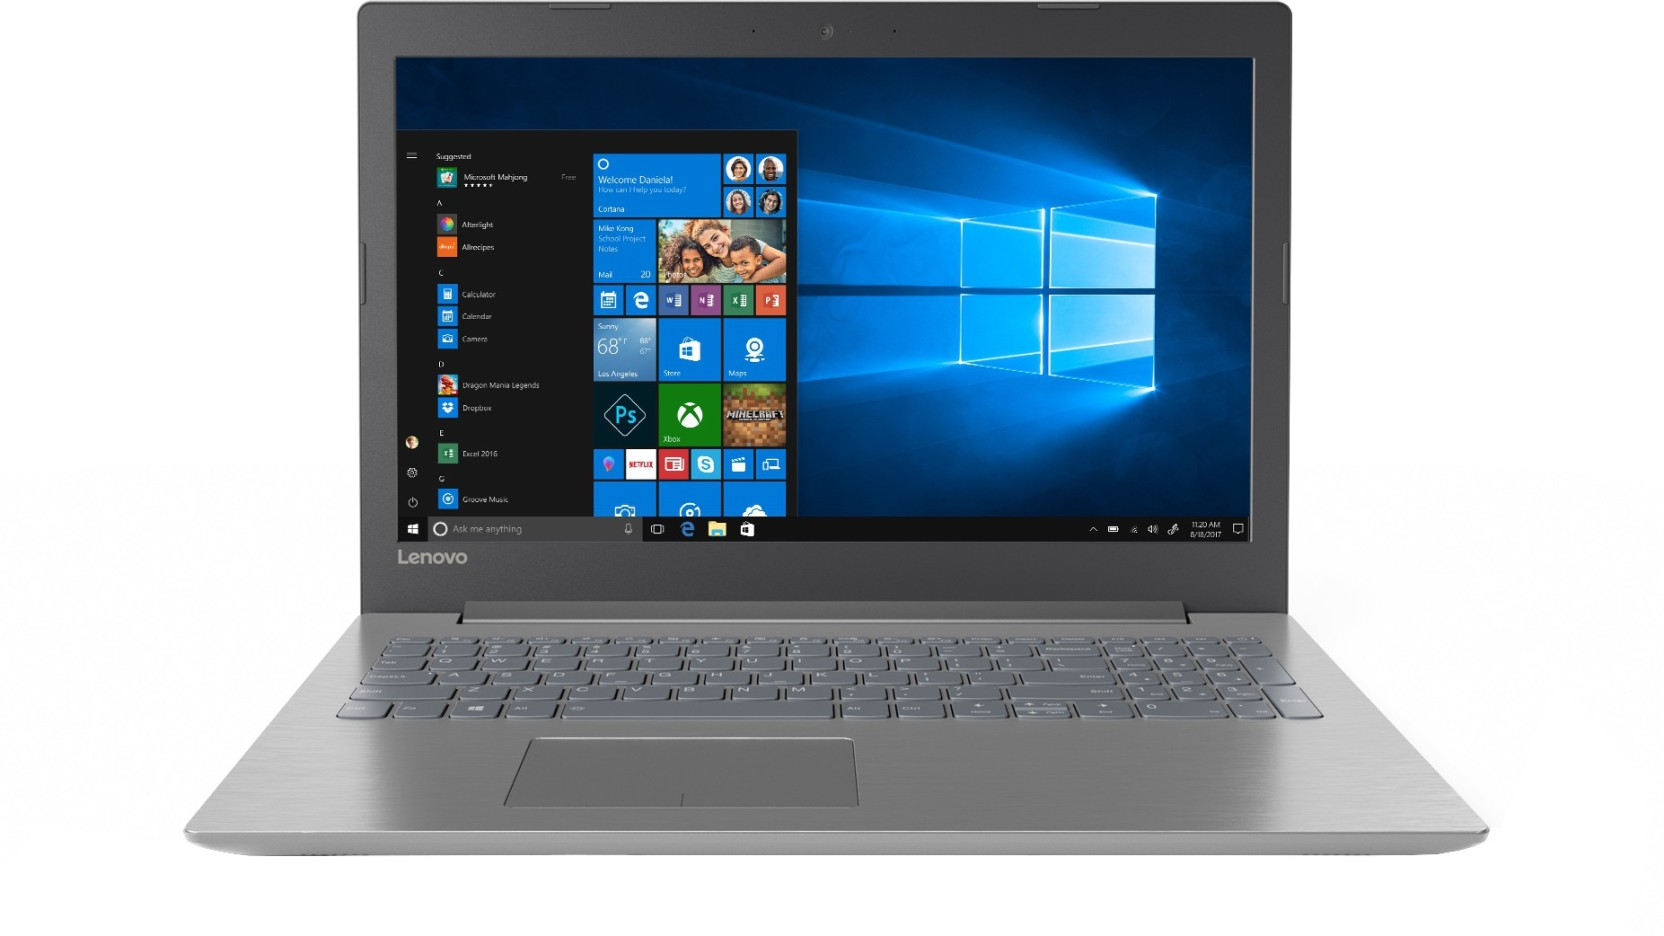 Lenovo Ideapad Core I5 7th Gen 8 Gb 1 Tb Hdd Windows 10 Home 2 Add Ram To Your Laptop Easily Cart